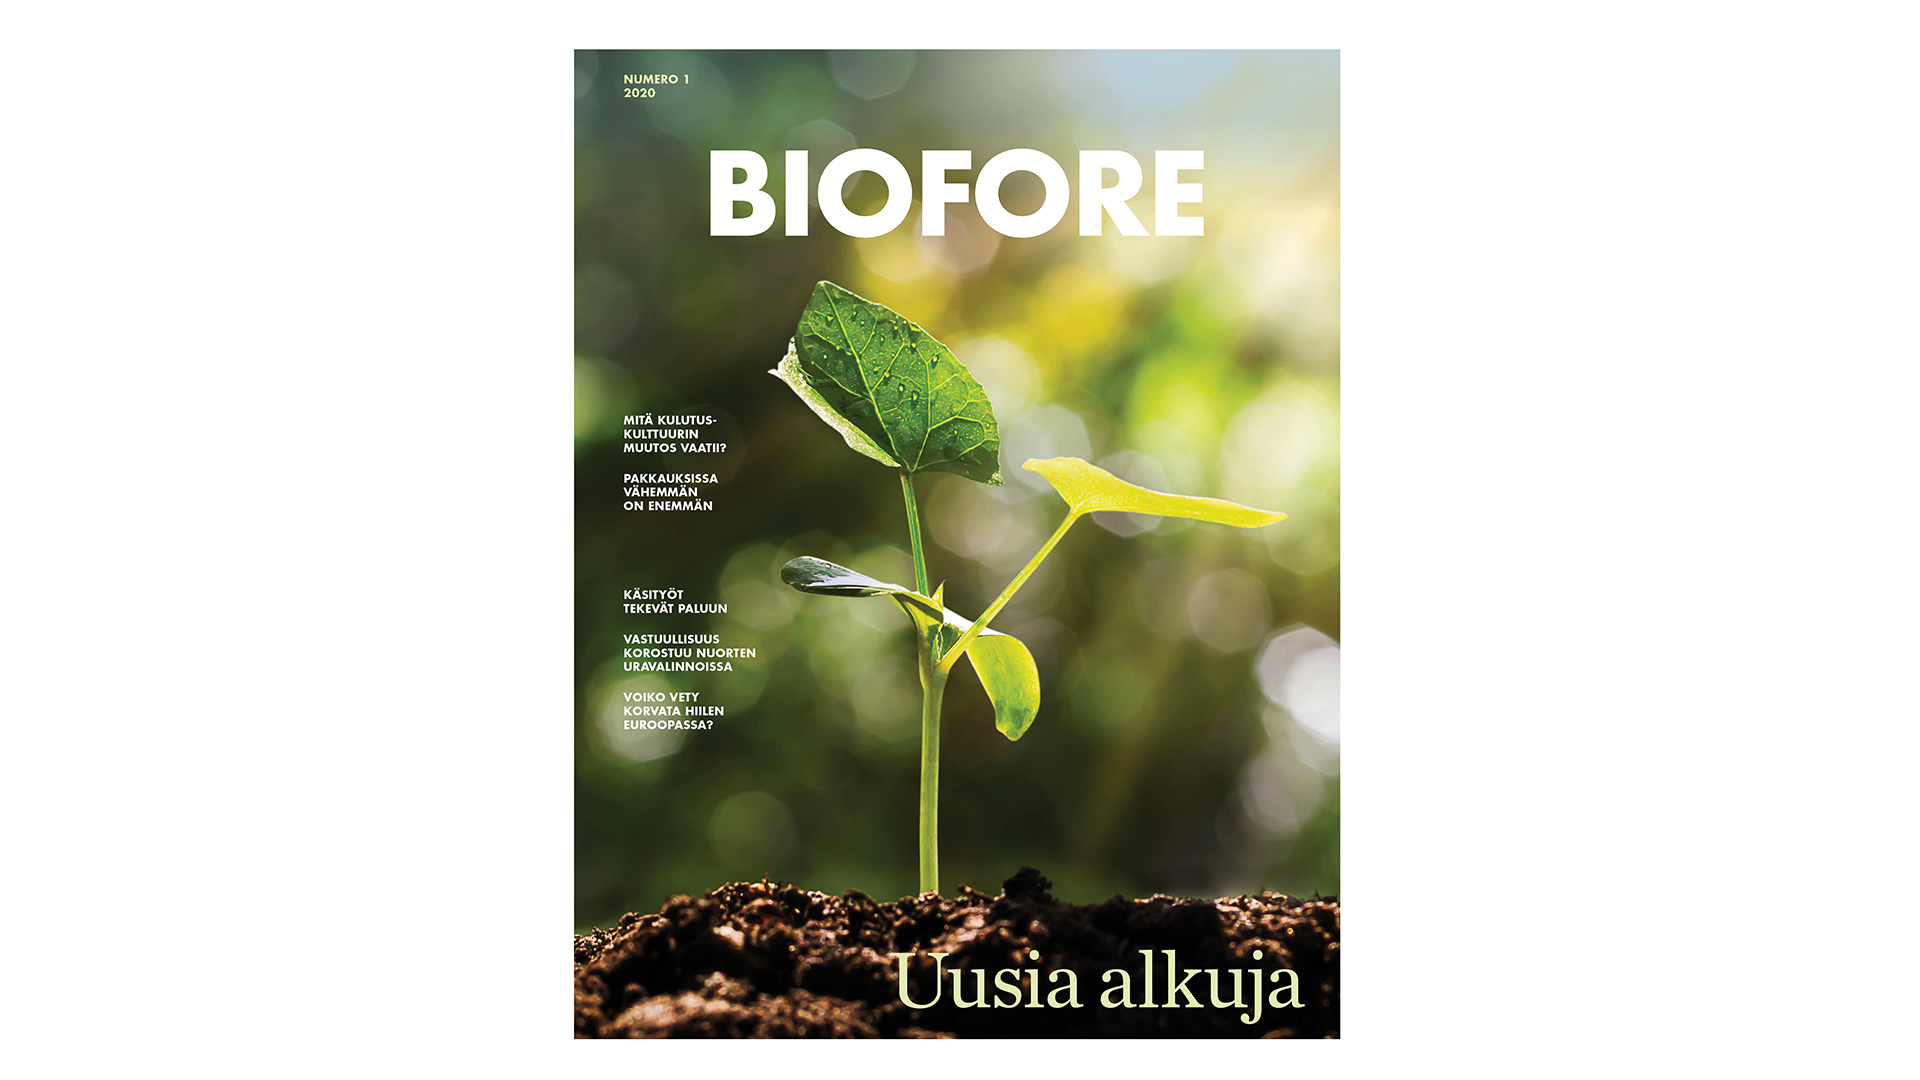 UPM-Biofore-magazine-cover-1-2020-FI.jpg